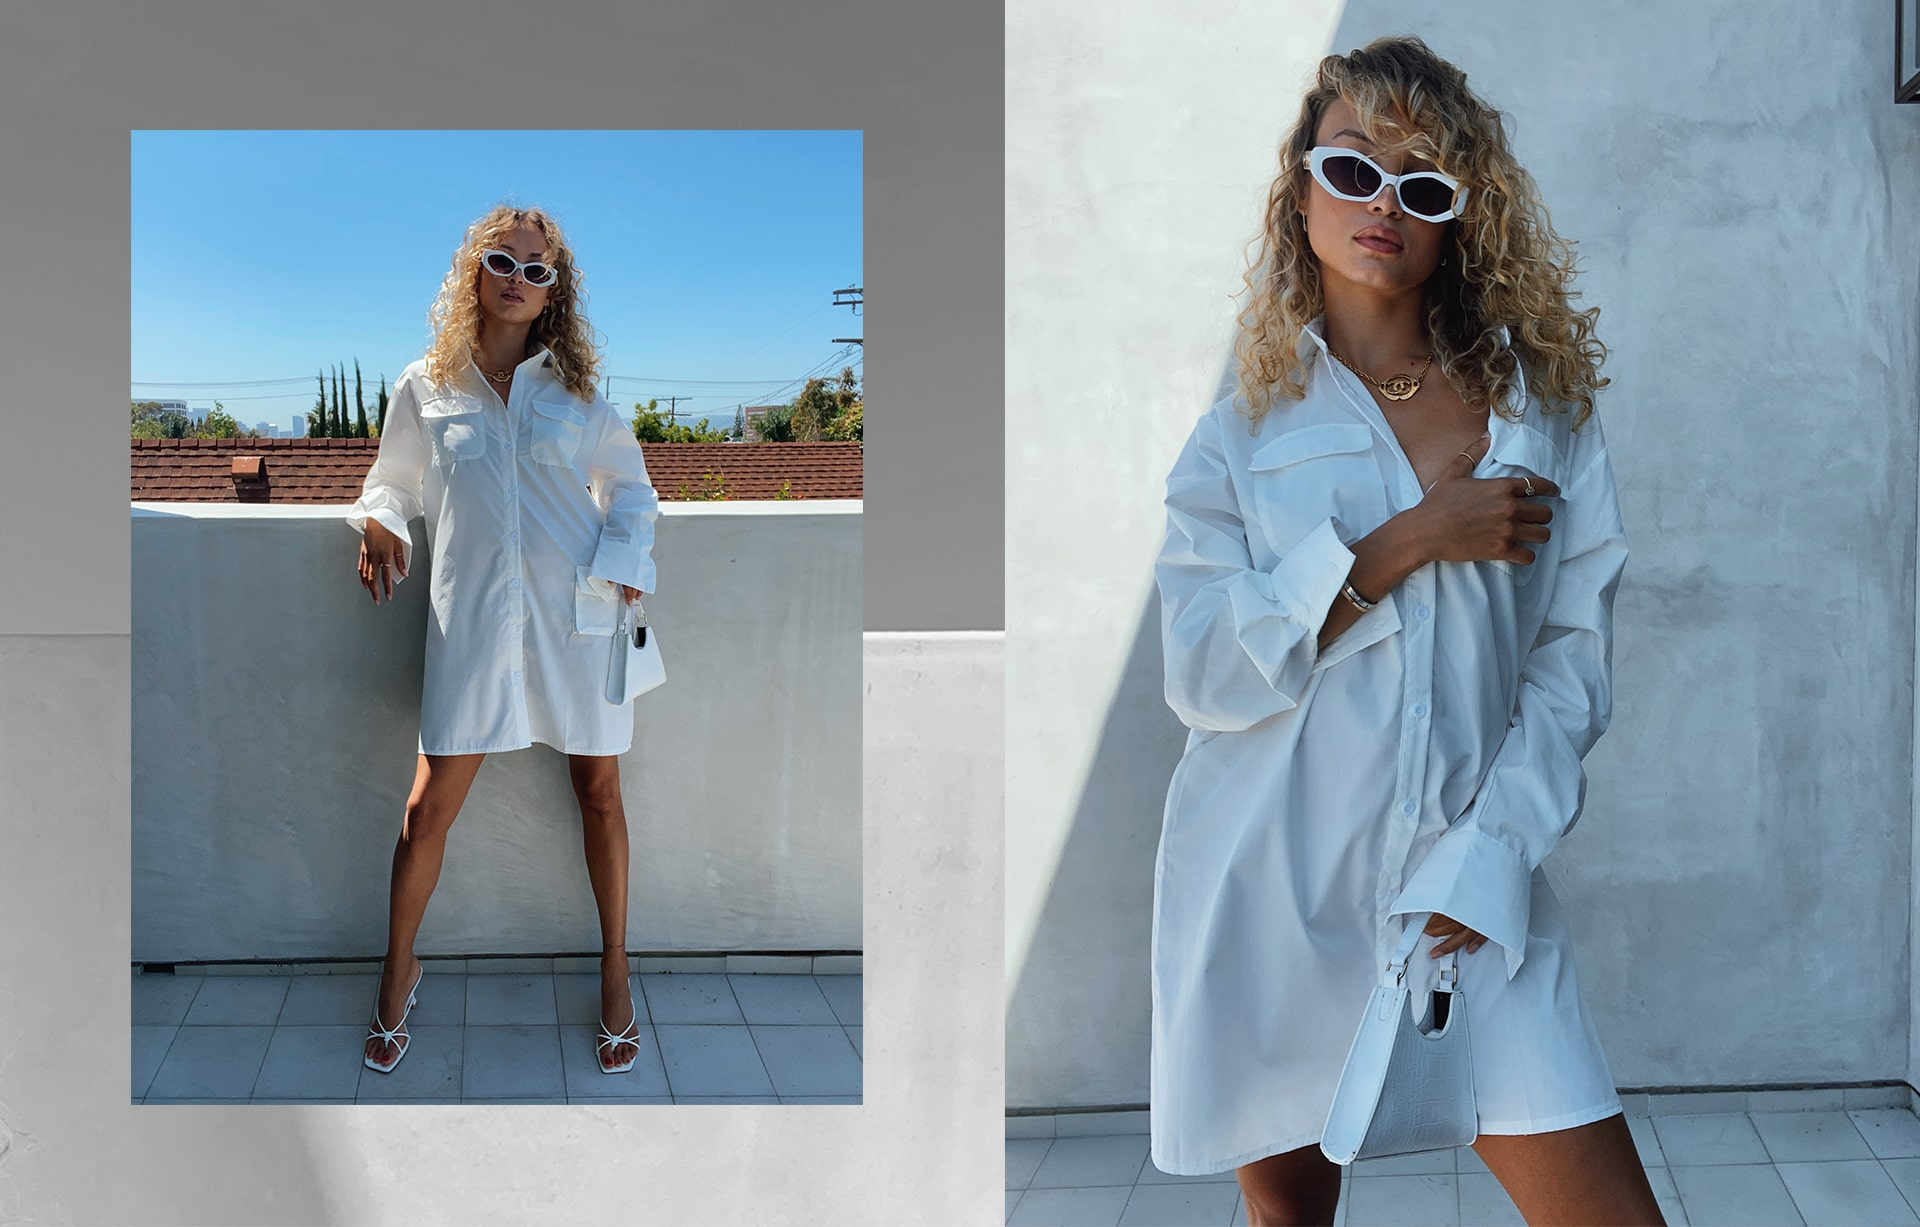 Rose Bertram Homewerk Lookbook Image 8 Desktop